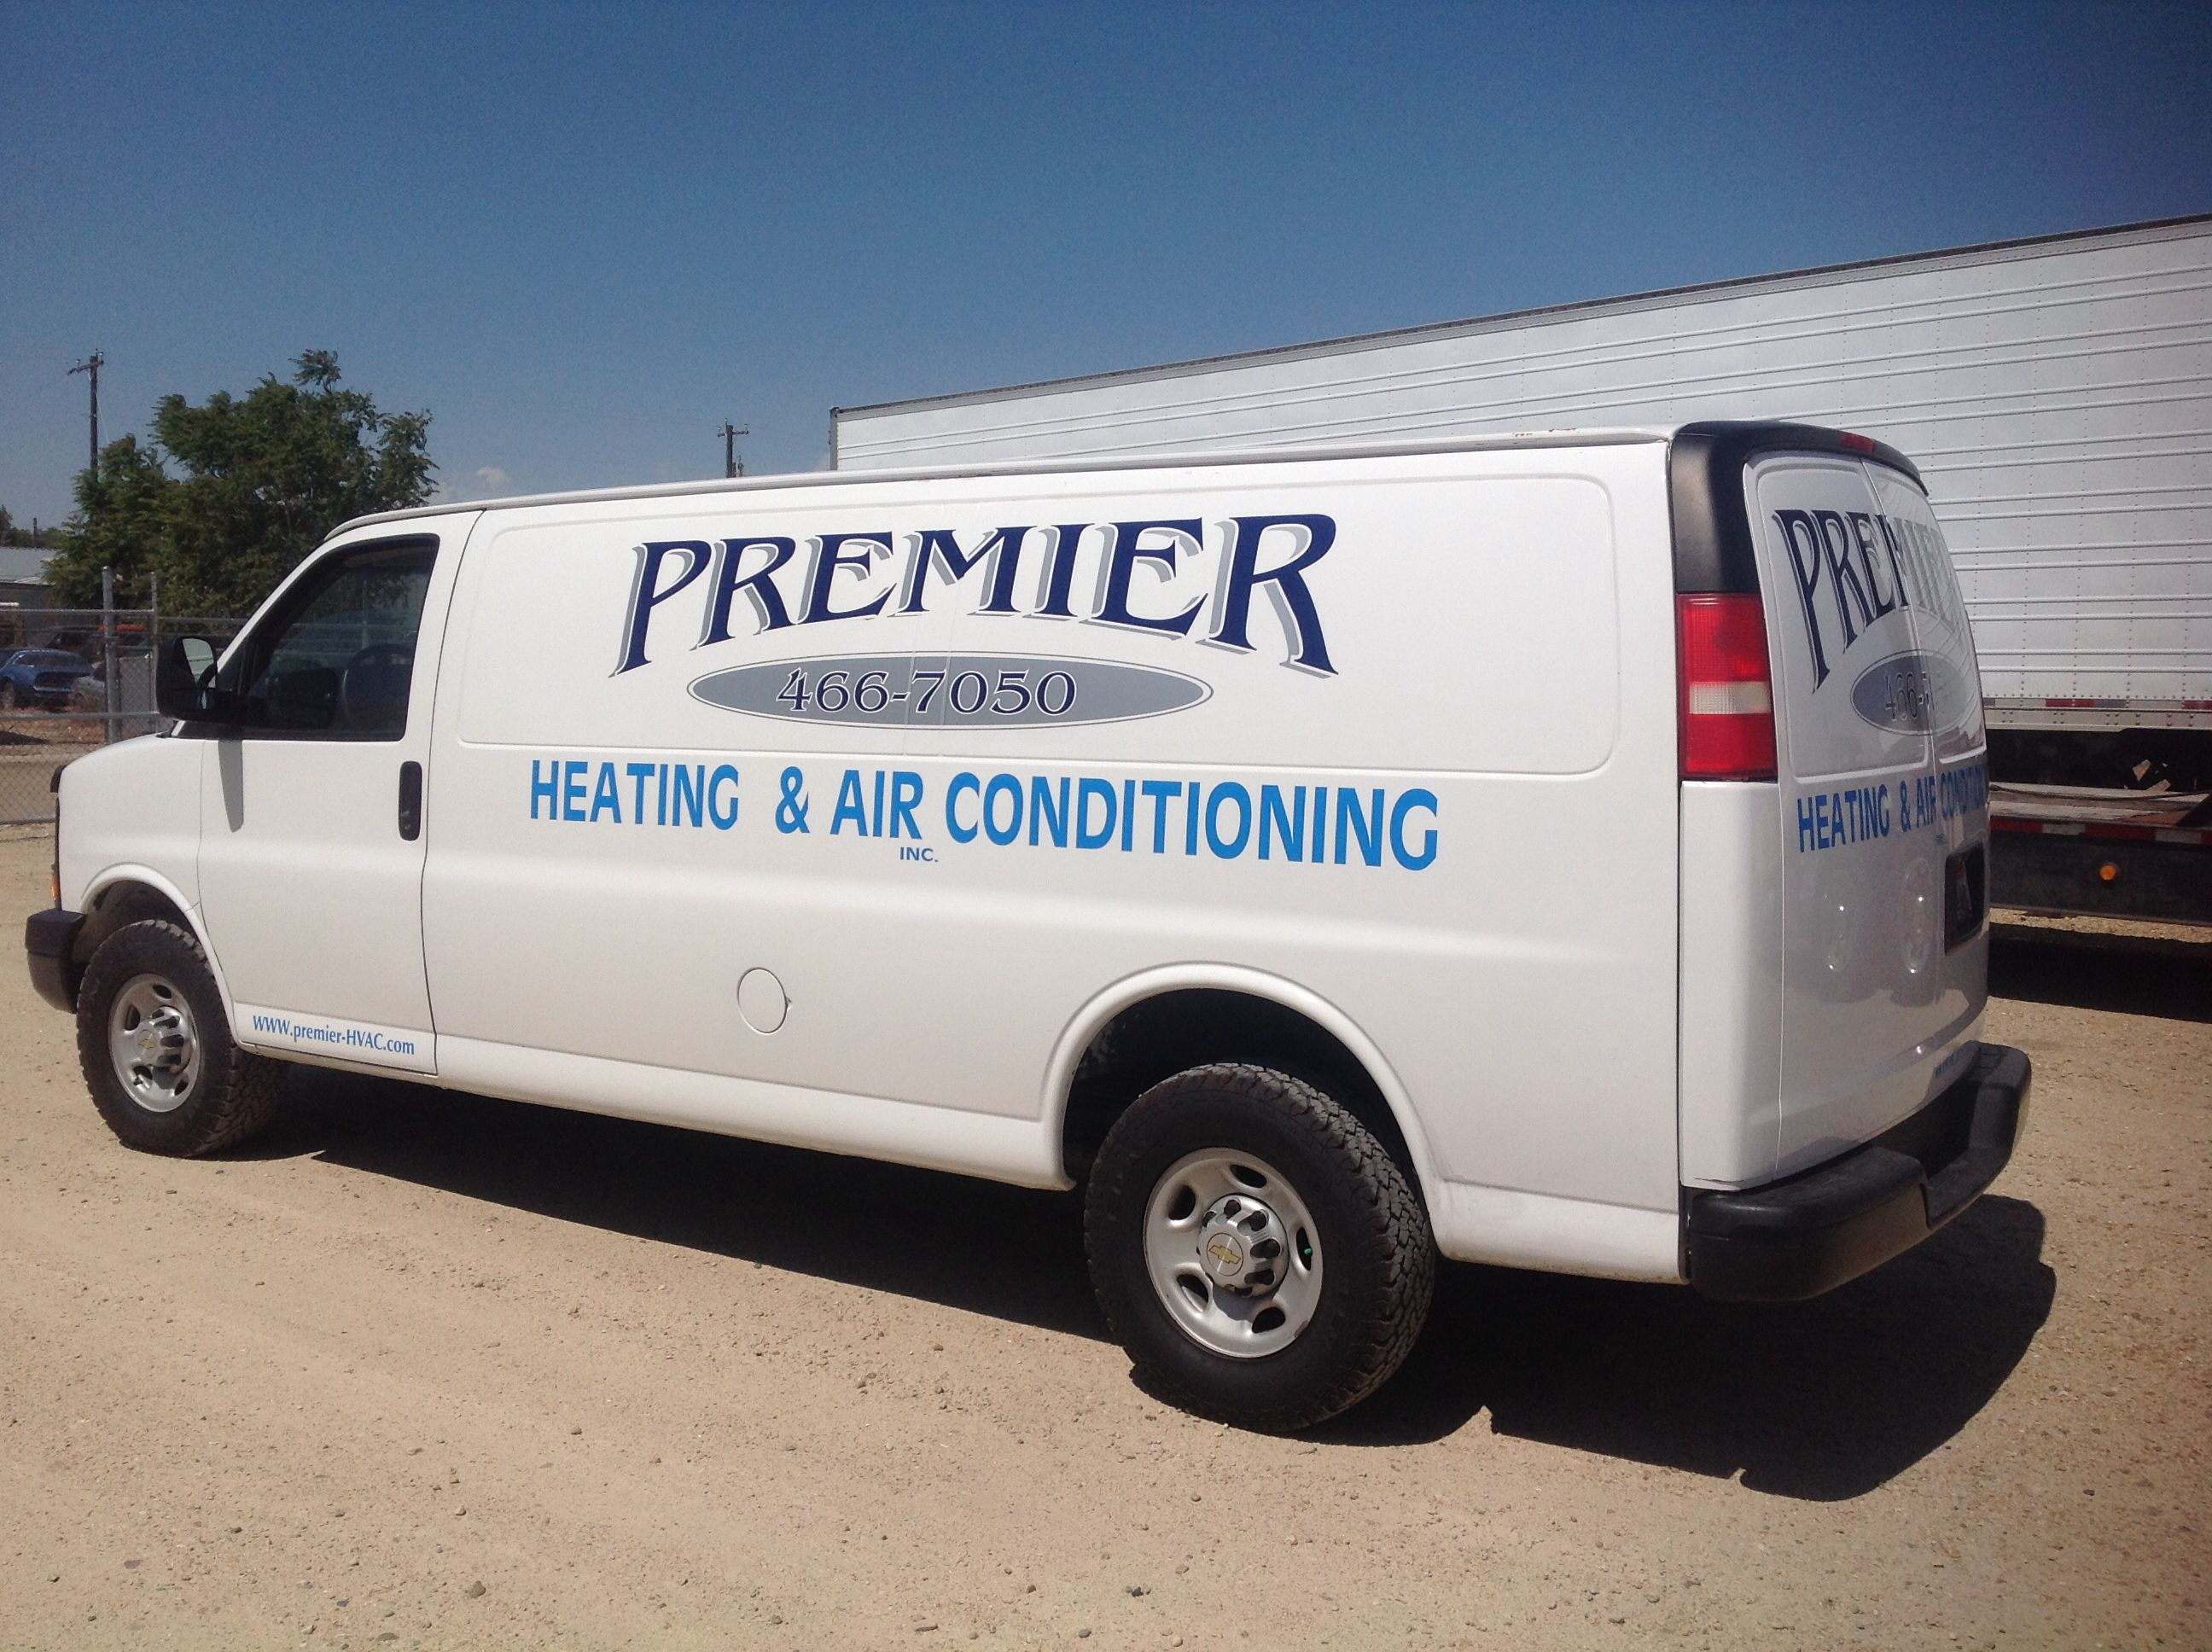 Premier heating and air conditioning Air conditioning